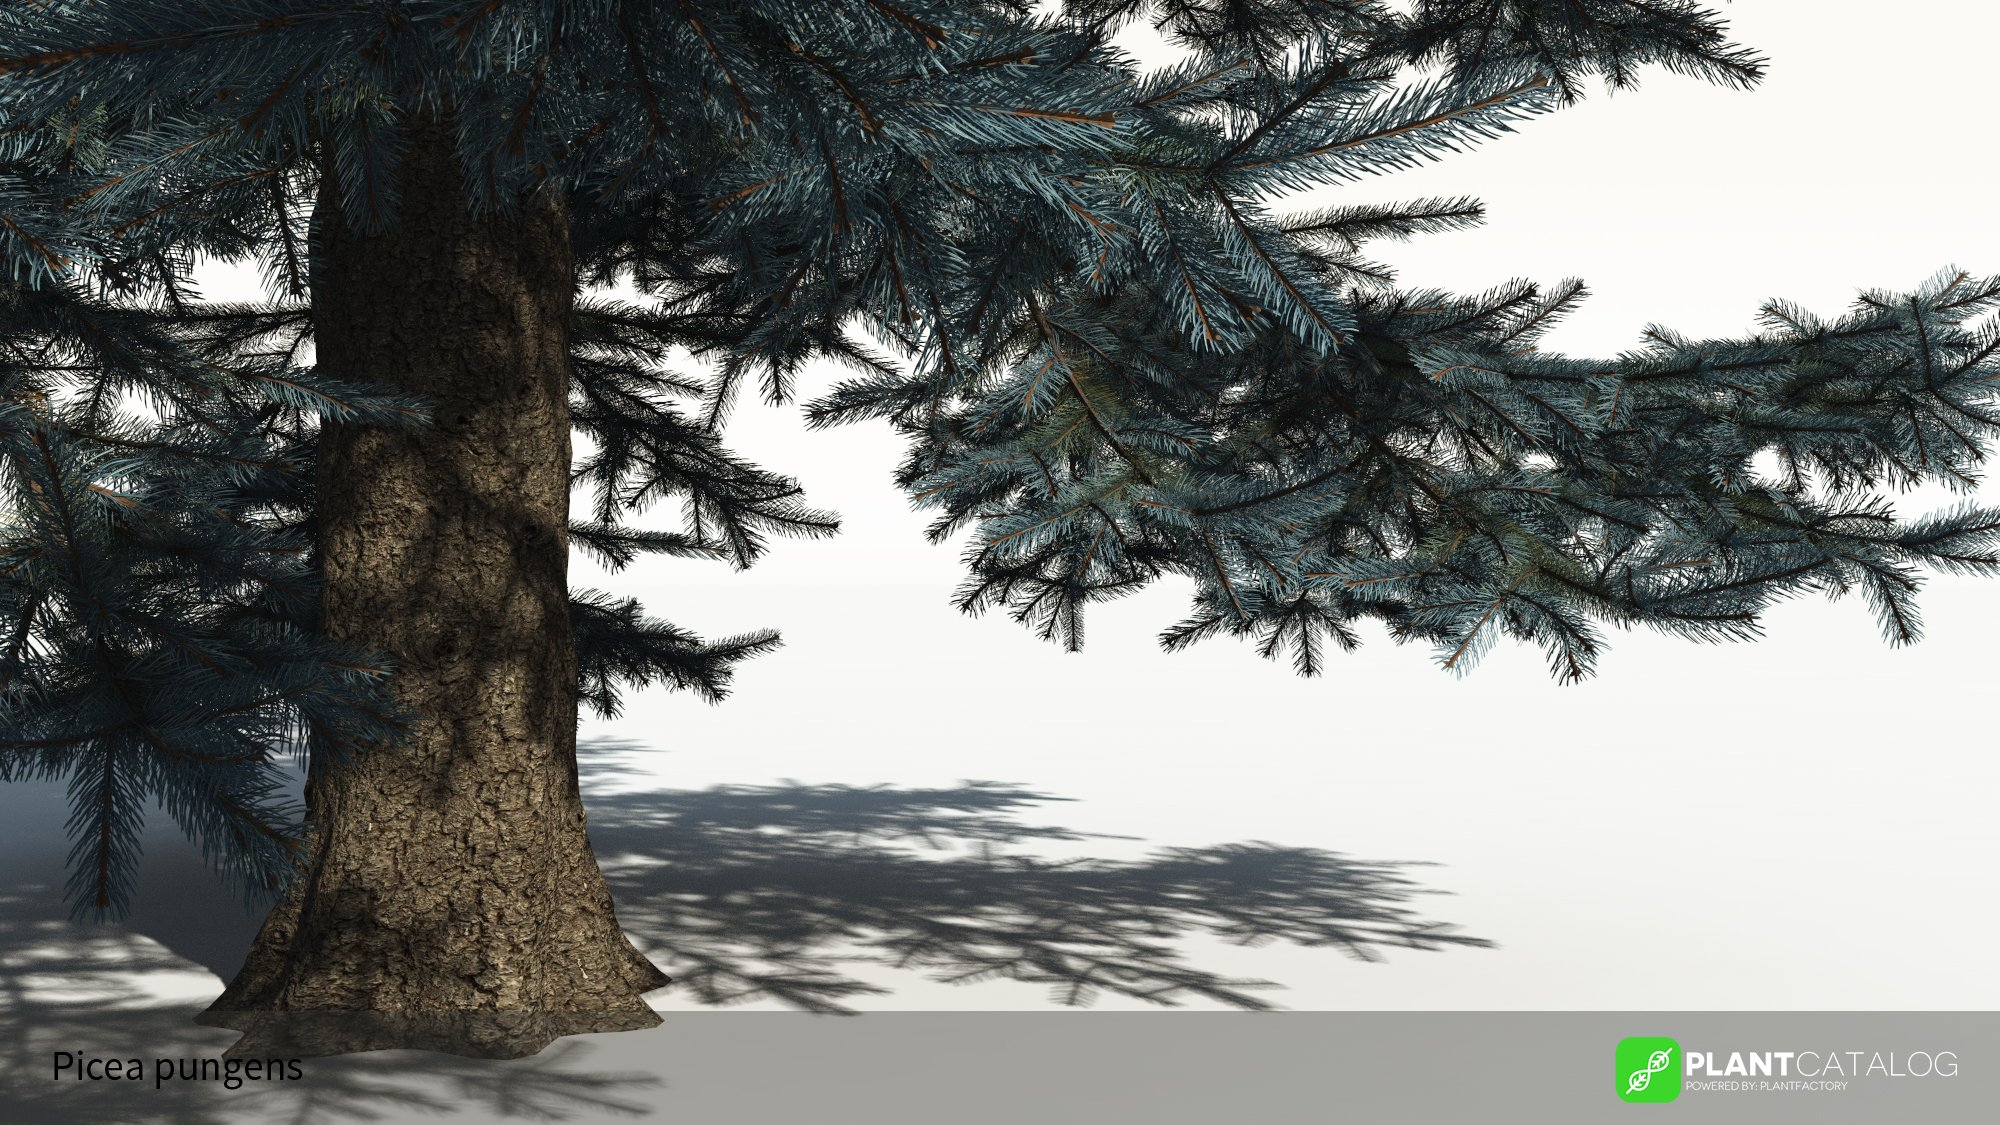 3D model of the Colorado Blue spruce - Picea pungens - from the PlantCatalog, rendered in VUE